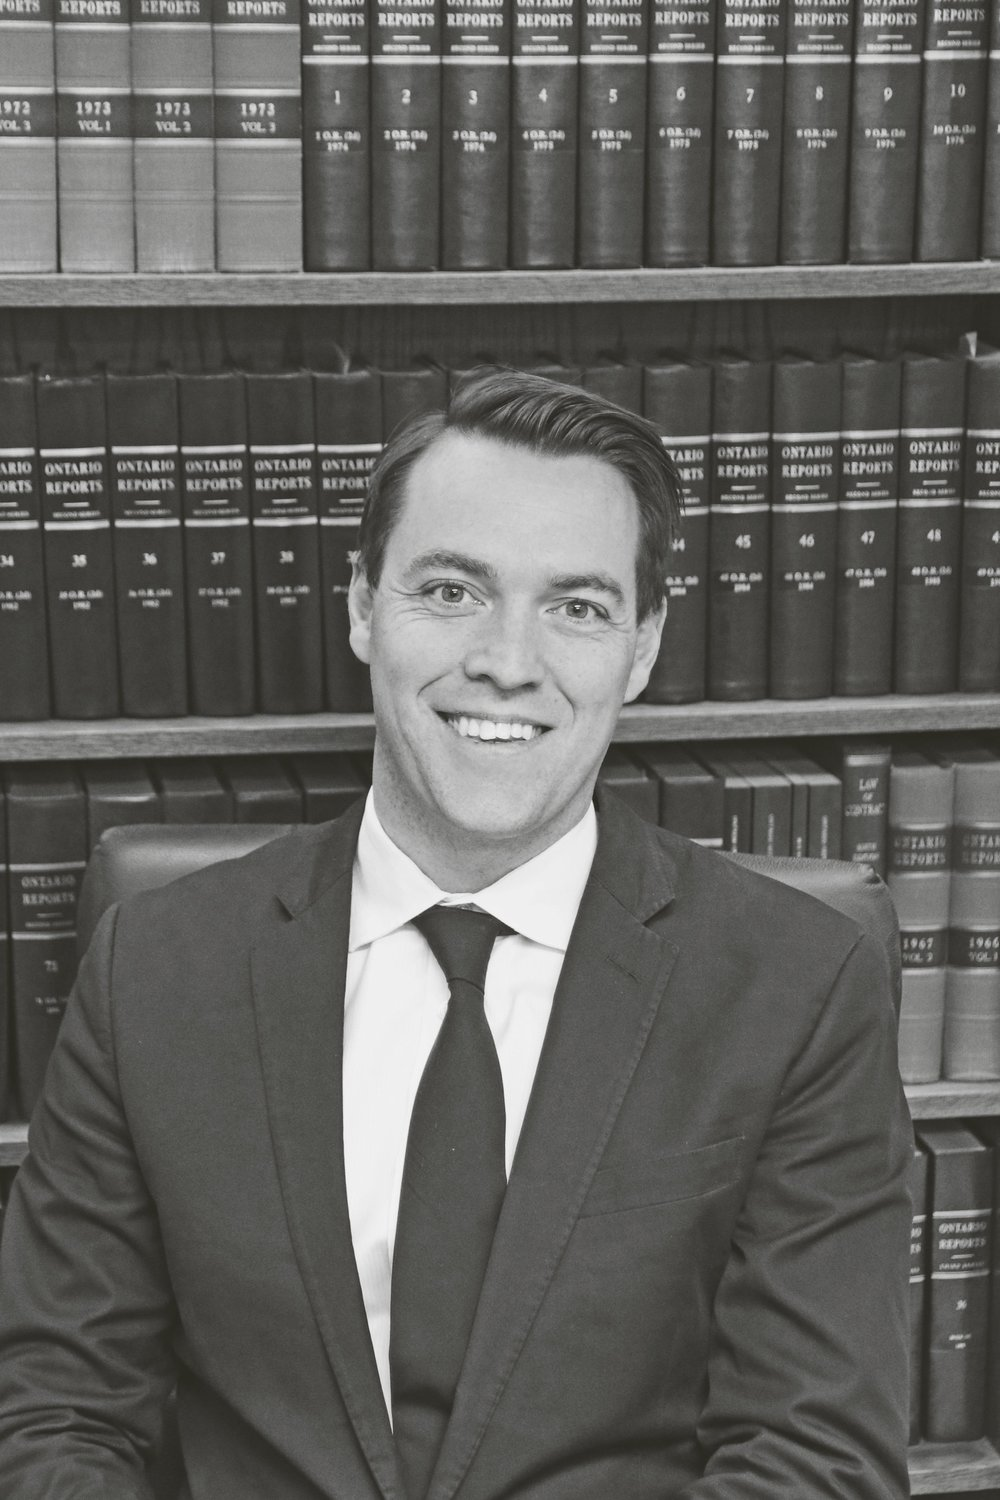 PartnerRaymond Gemmill - Raymond attended Bond University located on the Gold Coast of Australia, where he graduated with Honours from the Juris Doctor (JD) program. Prior to Law School, Raymond was awarded a Bachelor of Science in Criminal Justice Administration from Columbia Southern University. Called to the Bar in 2010, Raymond transitioned from articling student at our firm to seasoned practitioner. Raymond's core areas of practice include Criminal, Real Estate and Wills & Estate work. While adept at finding practical, cost effective solutions to a given issue - Raymond also has considerable trial experience when your situation calls for representation in court. Raymond can be found enjoying time his wife Jen and their three sons when he is not in the office.